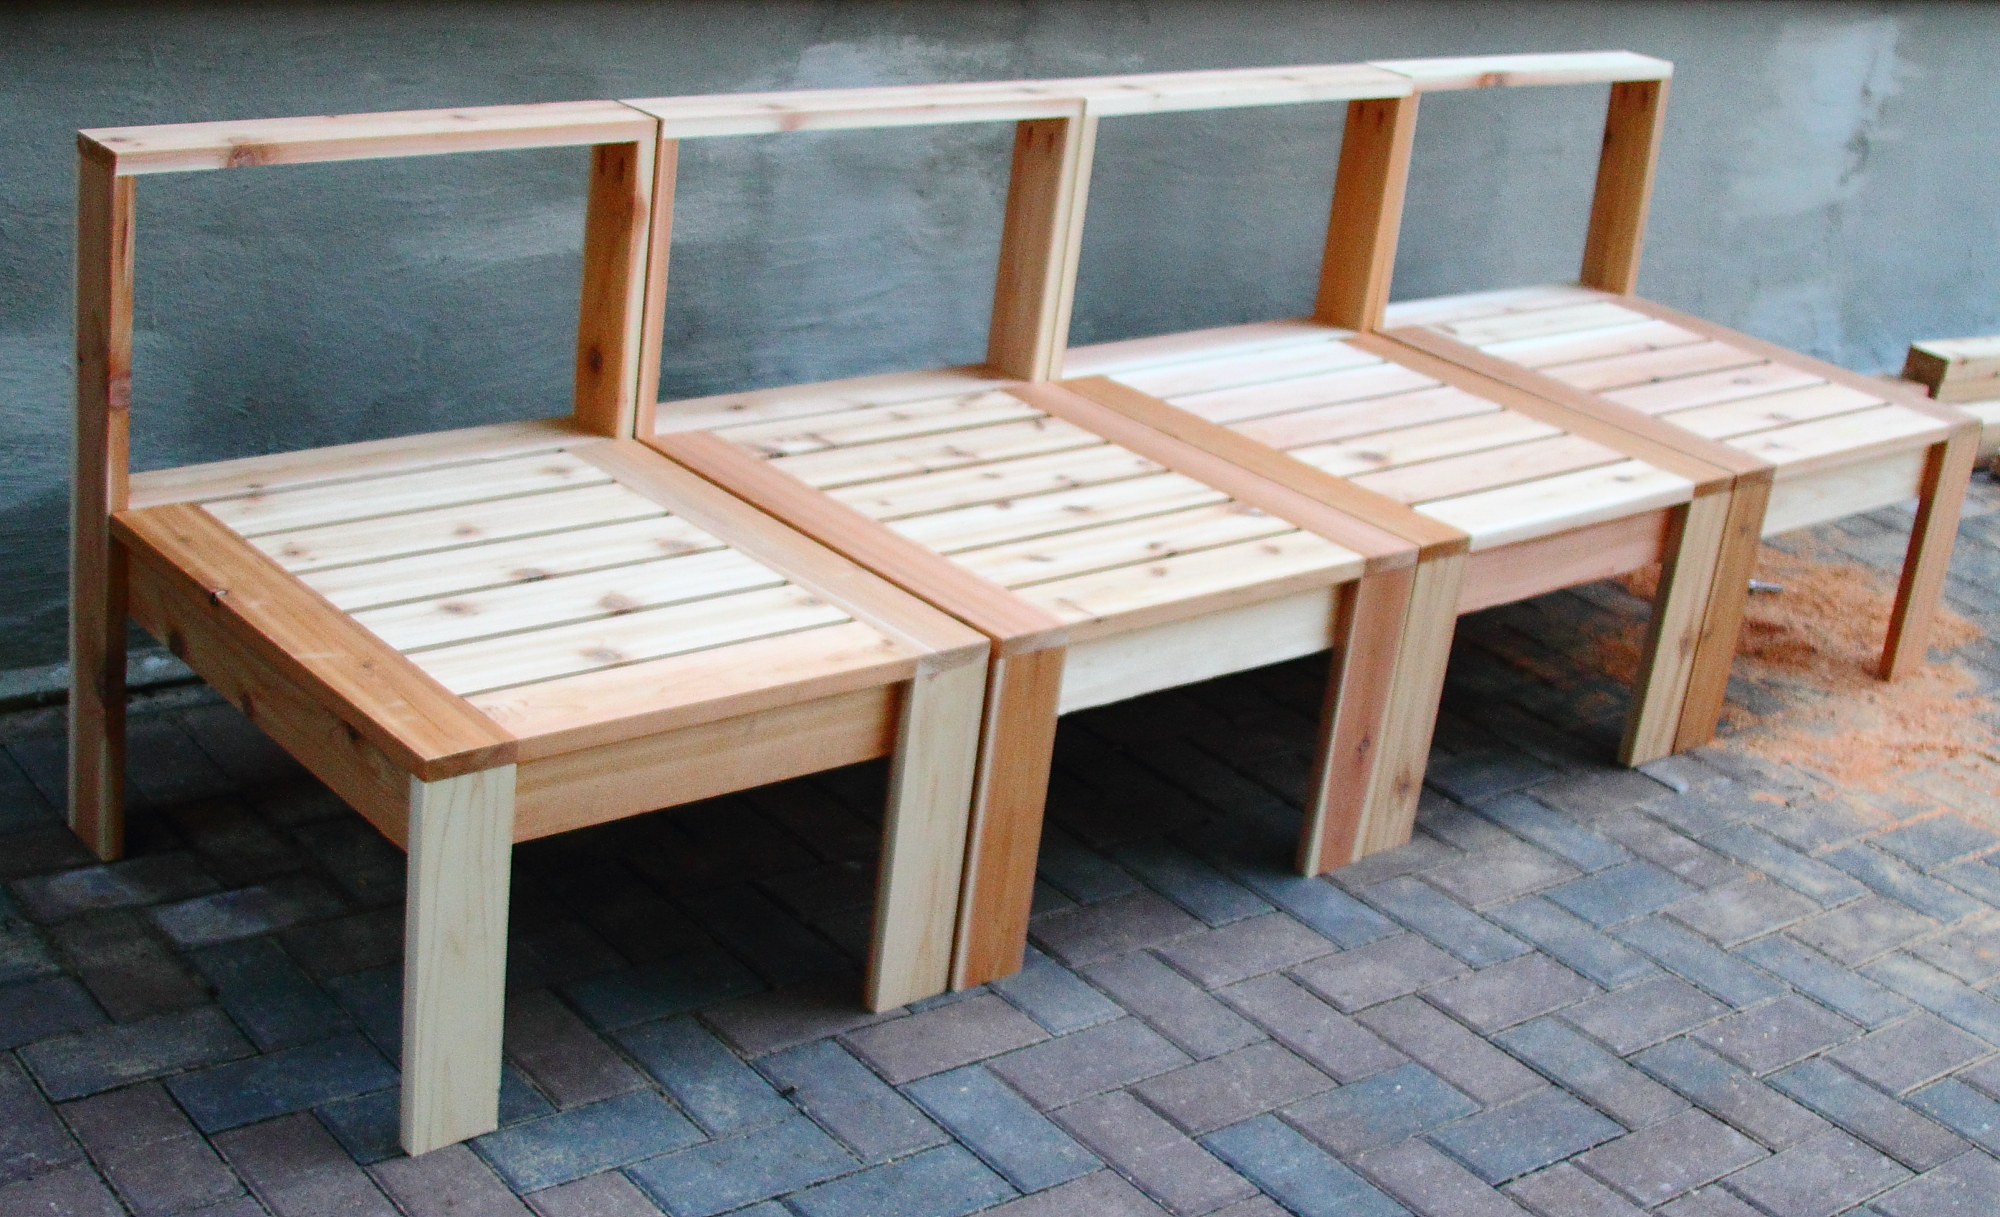 Diy Patio Table And Chairs 15 Really Creative Diy Furniture Hacks Ideas Hgnv Com